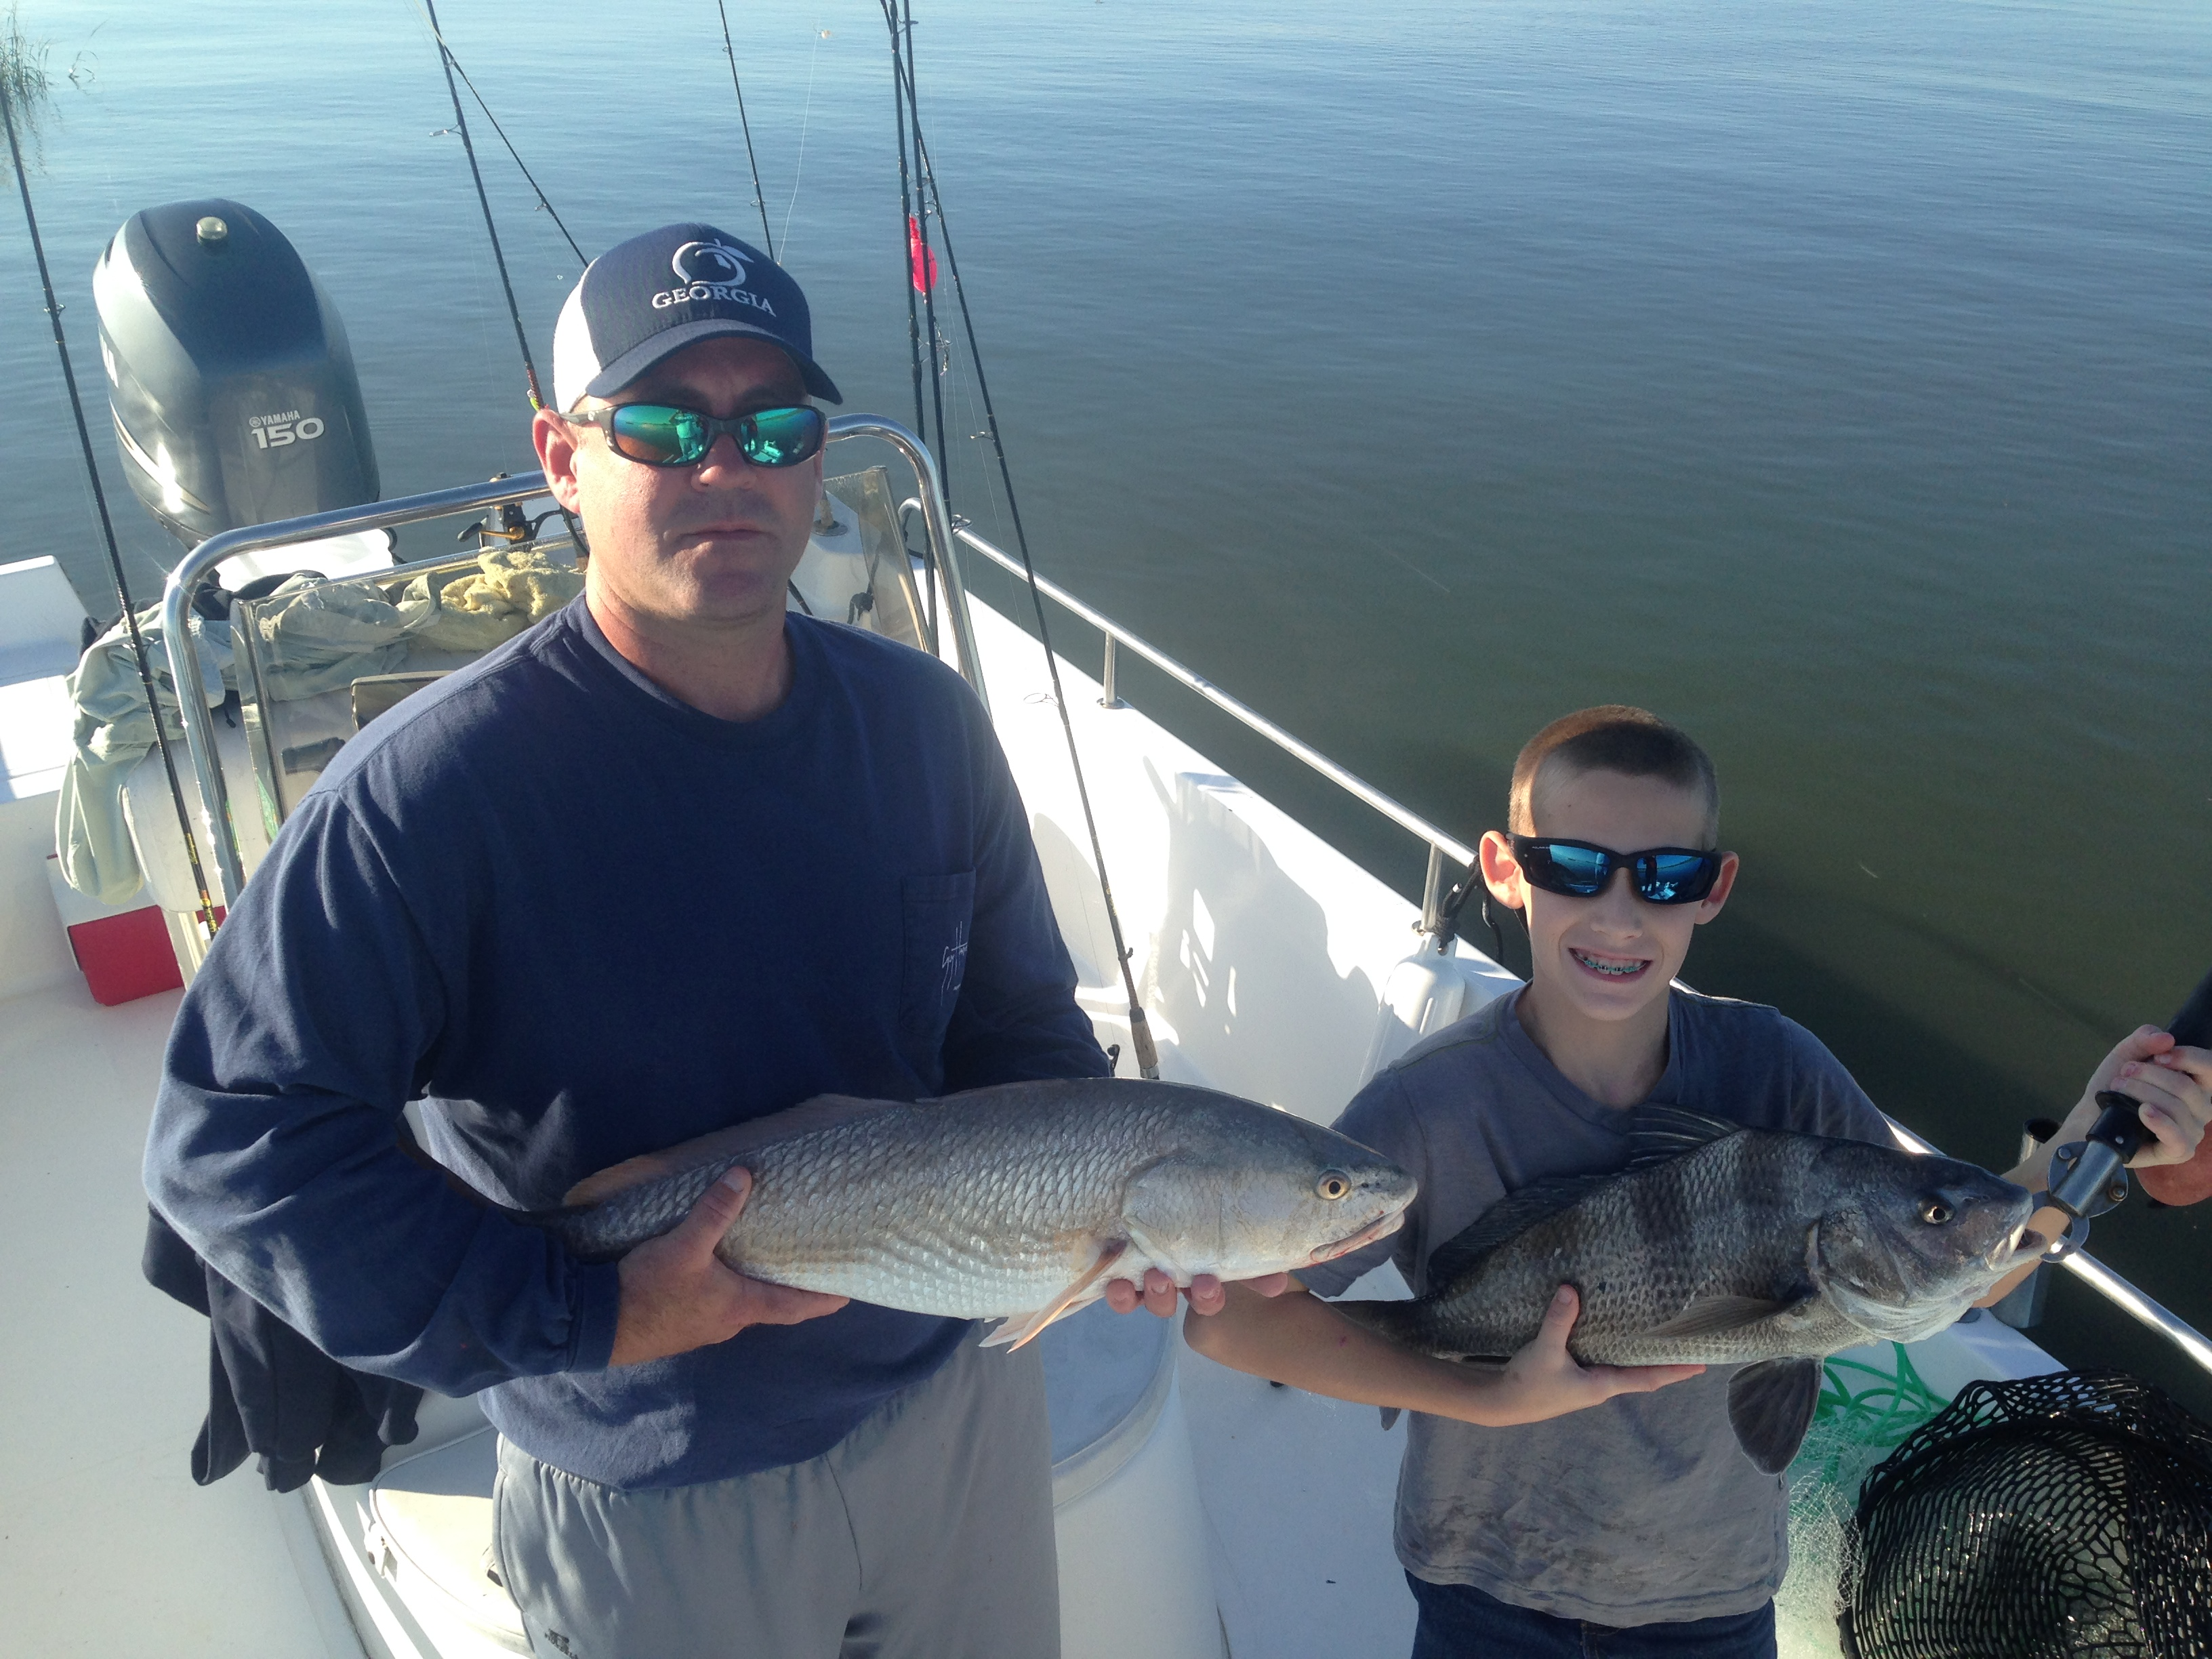 Michael Morris and son with a couple of nice fish! Michael has red while his son Christian is holding a black drum. Nice catching!